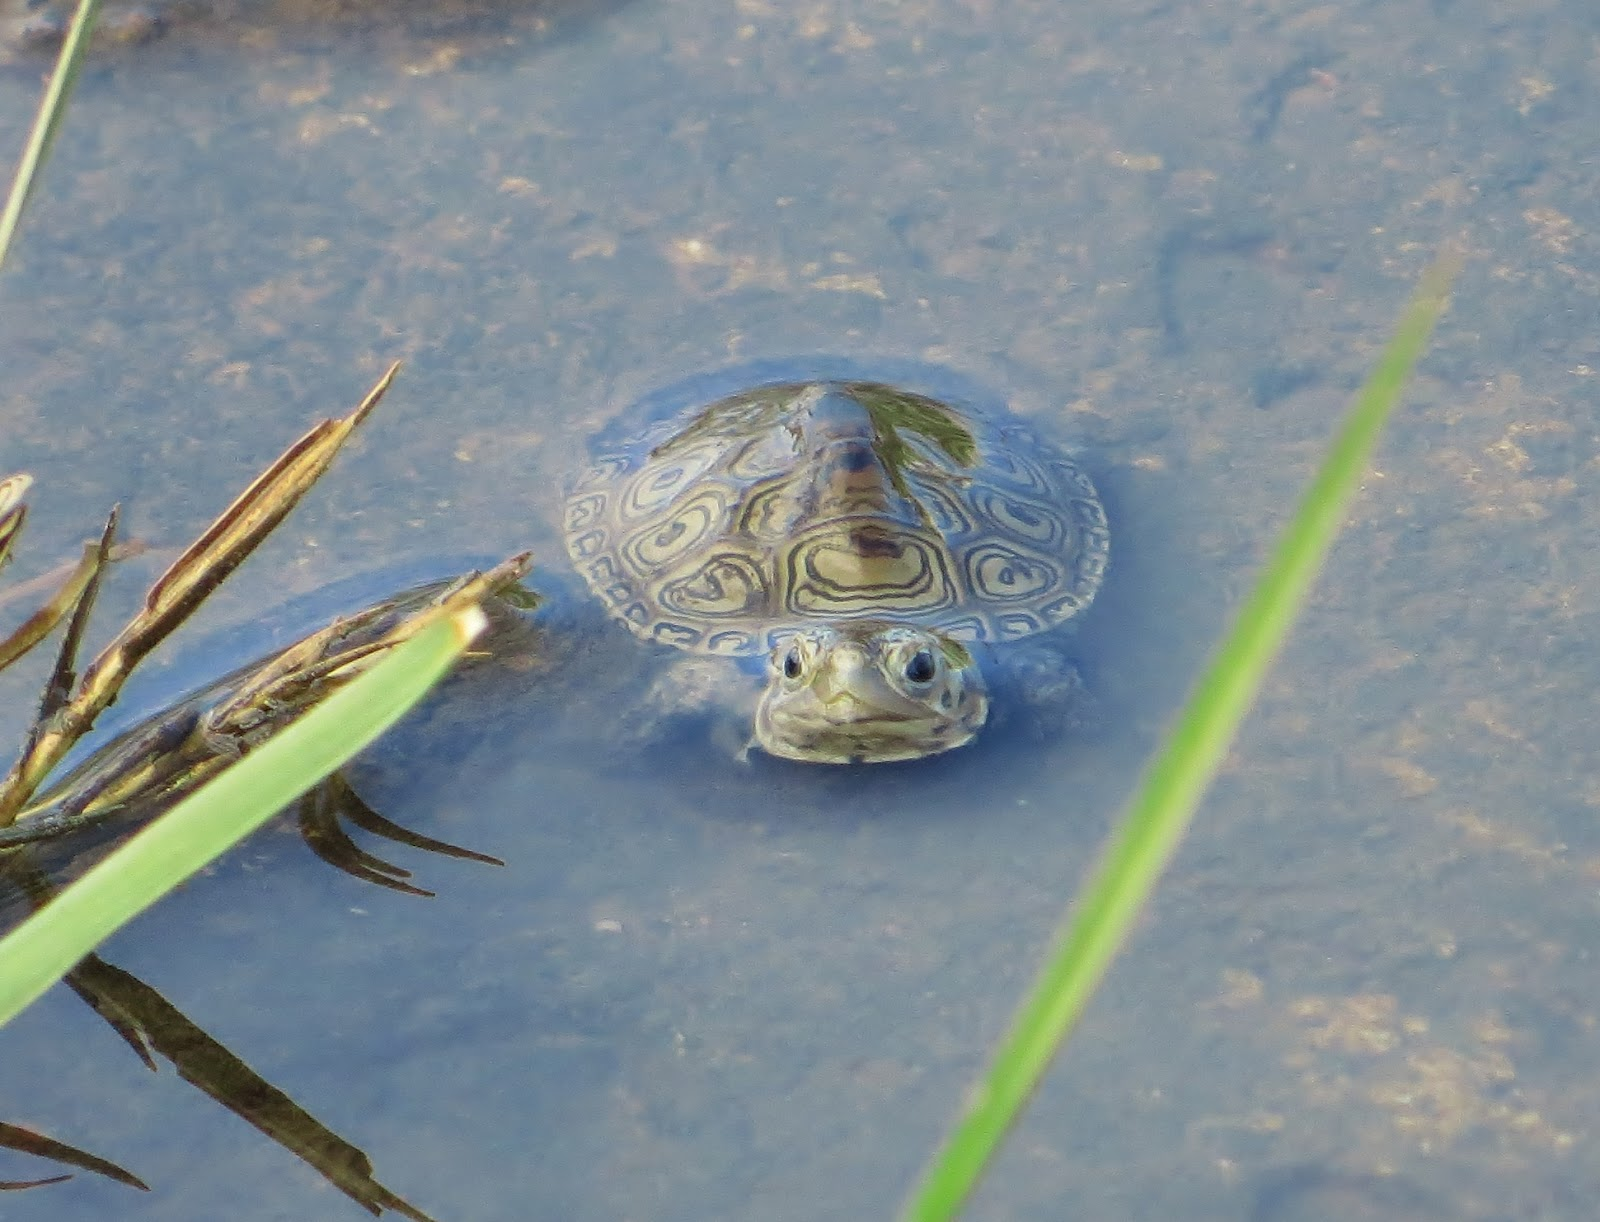 ... Edge of New York City: Baby Terrapins First Days in New York Harbor